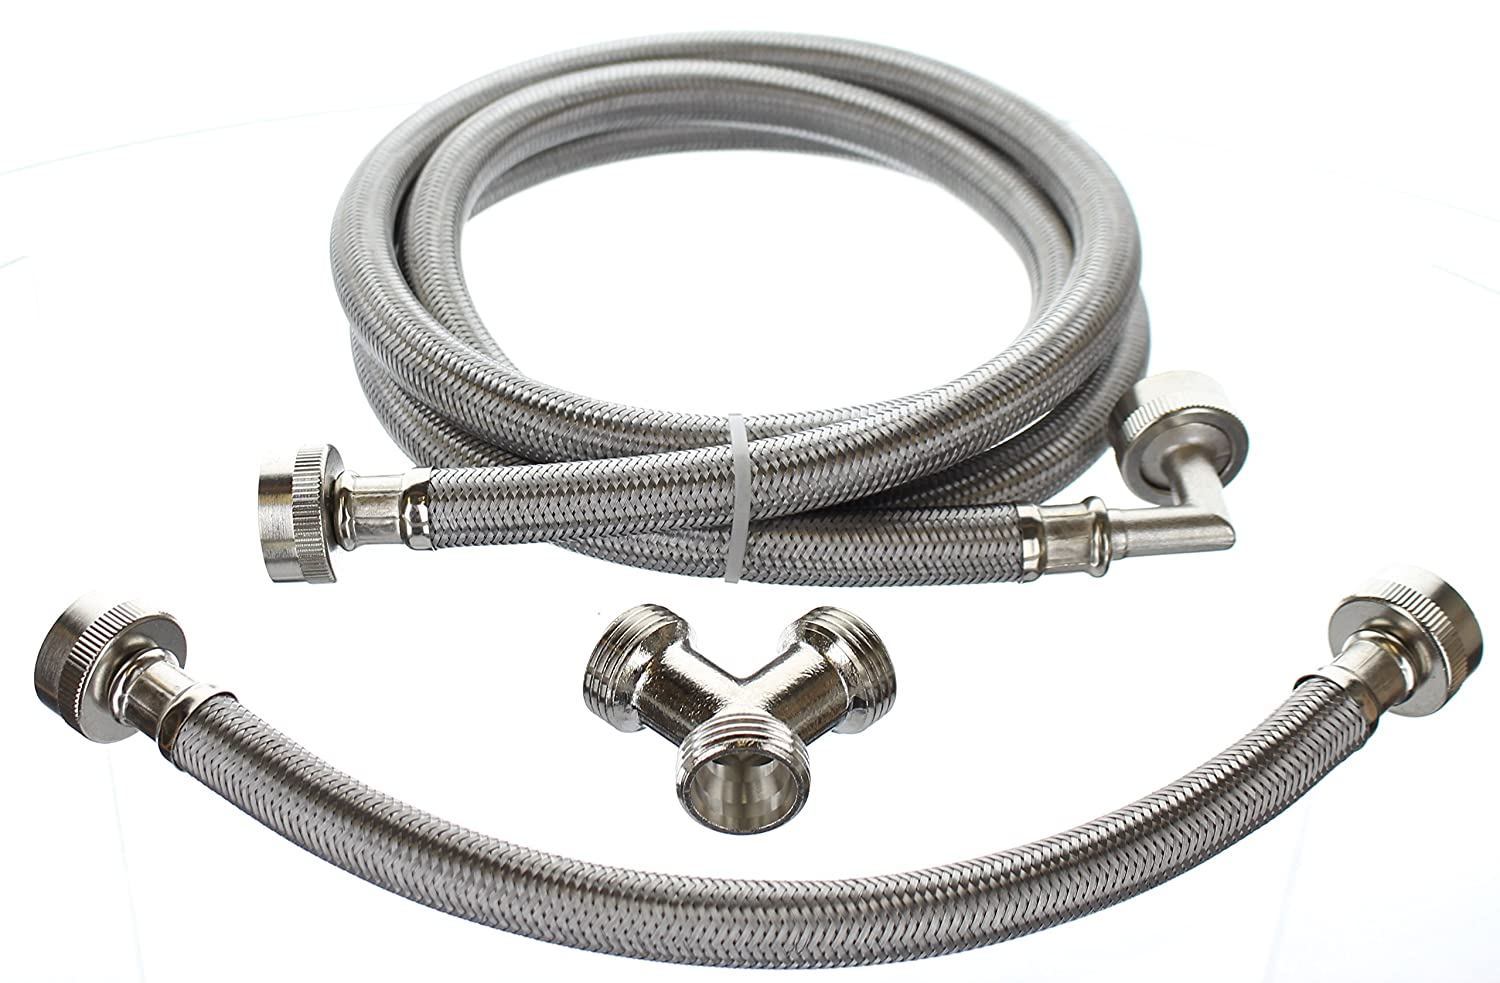 Premium Steam-Dryer Installation Kit - Braided Stainless Steel, 6 ft